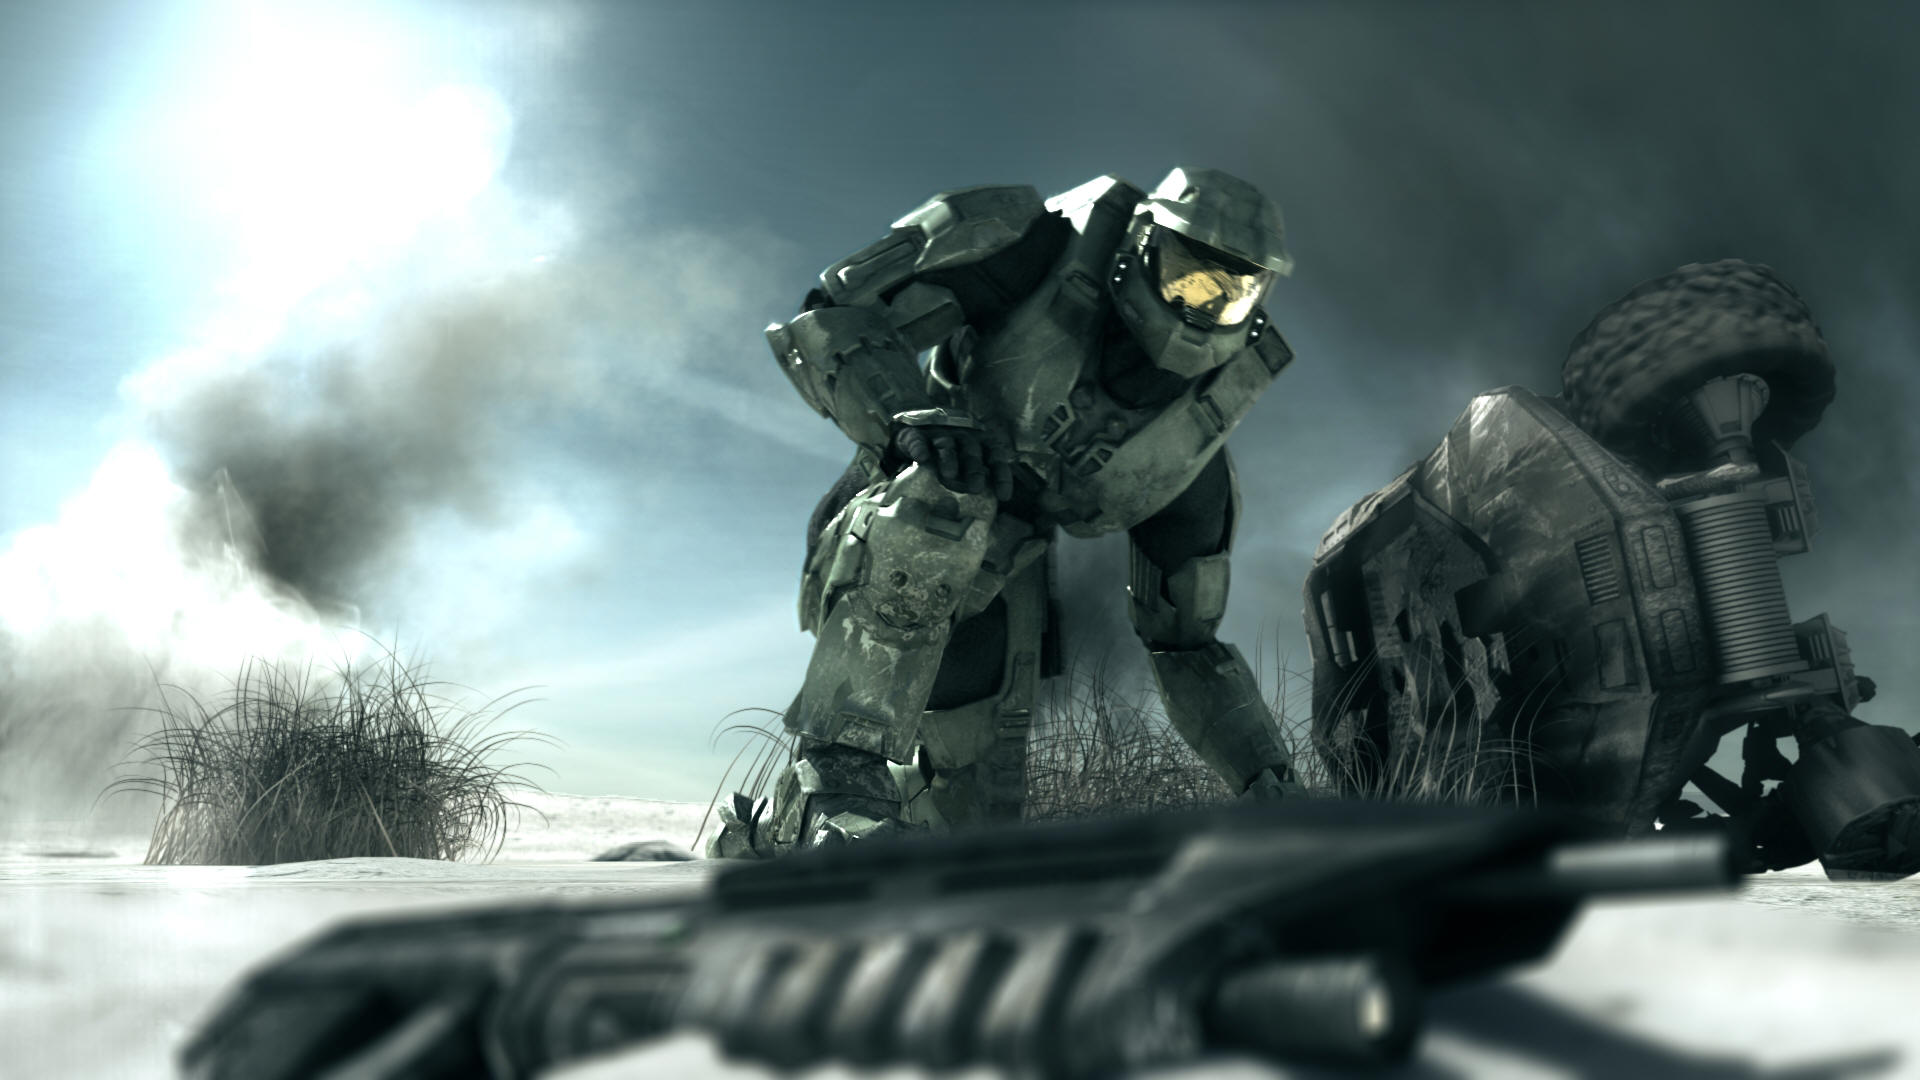 Halo 3 Master Chief Wallpaper Mobile Phones 1920x1080